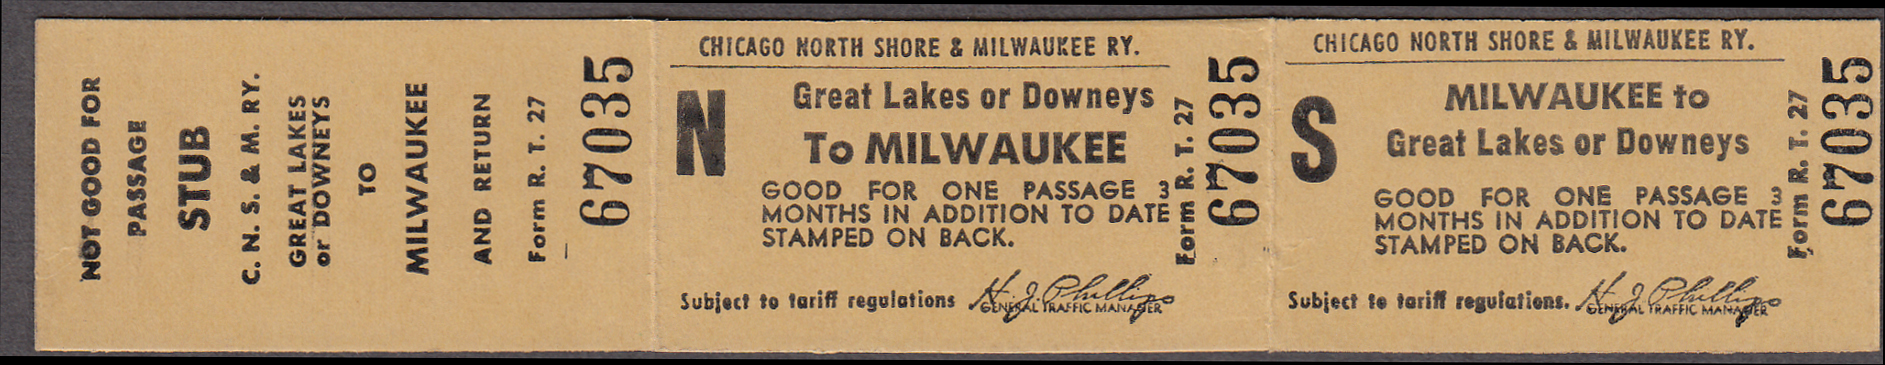 Image for Chicago North Shore & Milwaukee Ry Great Lakes or Downey-Milwaukee unused ticket